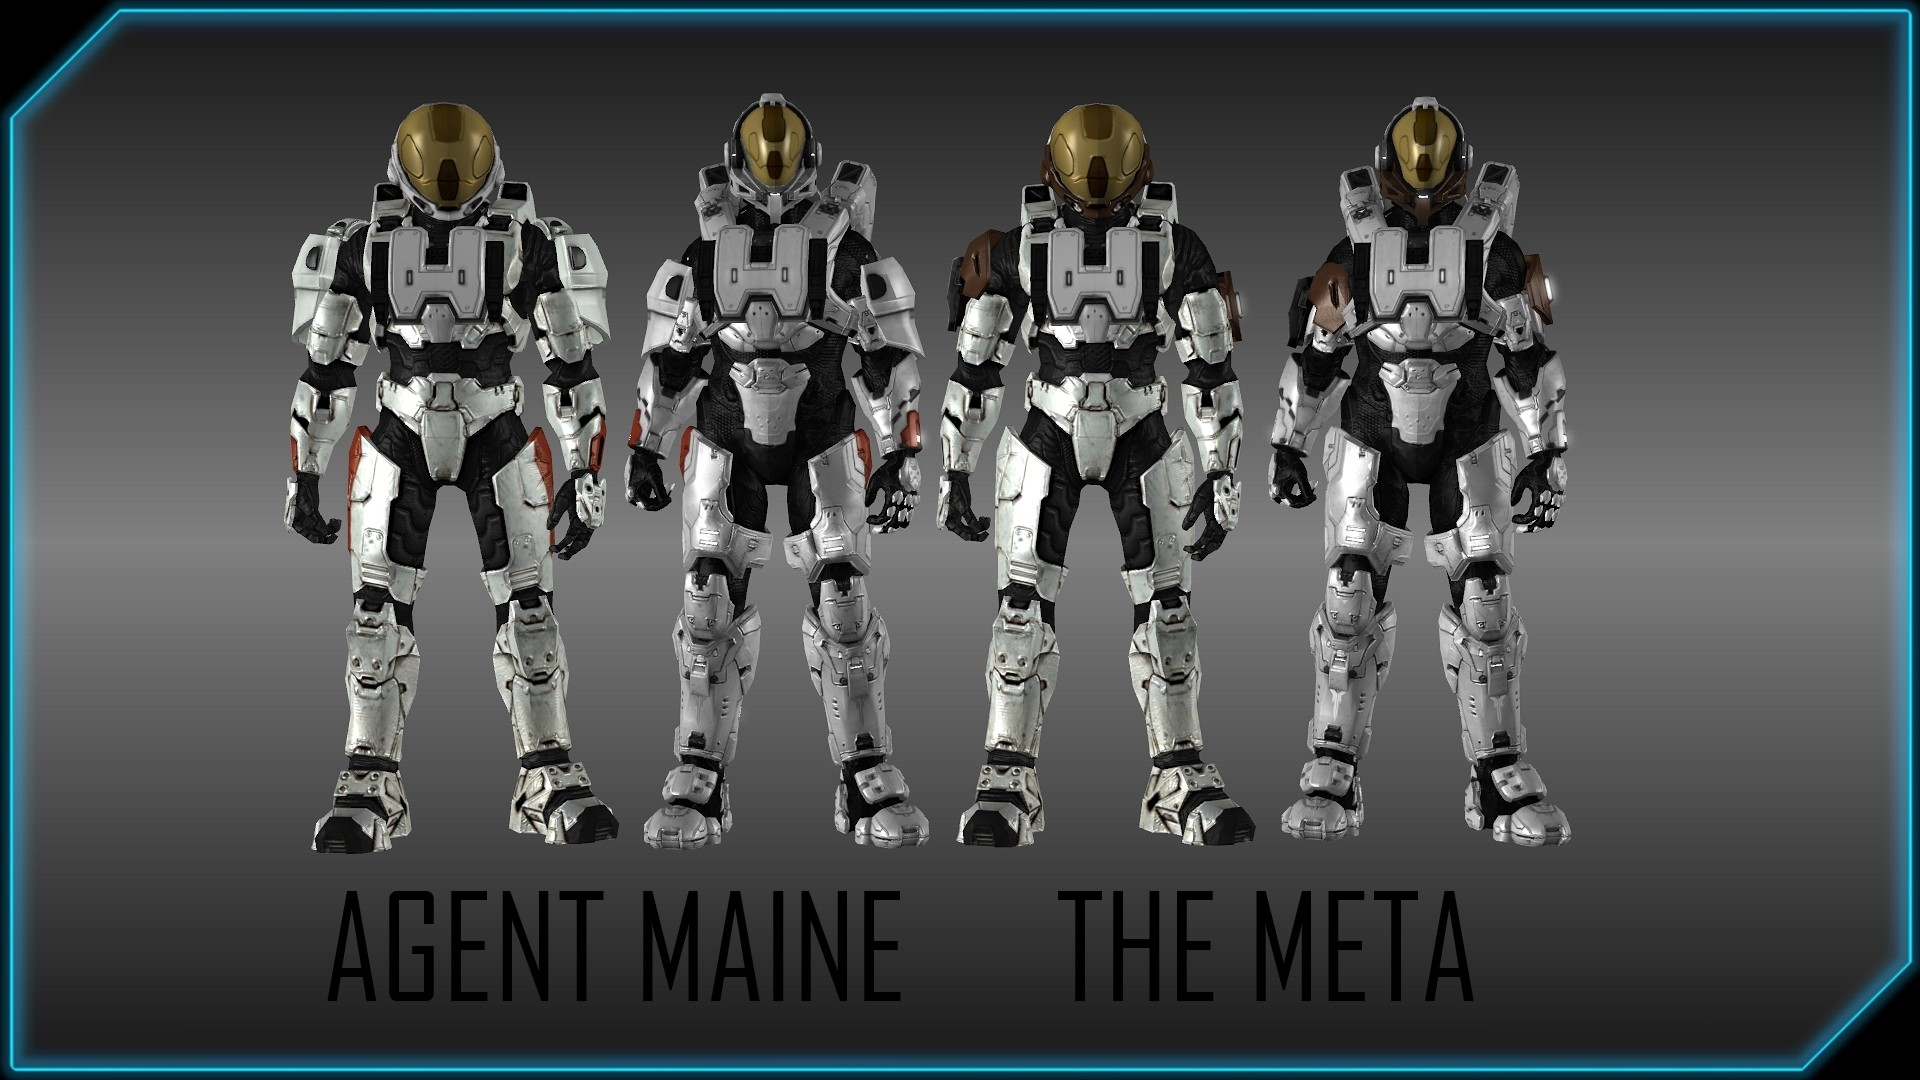 Halo Red Vs Blue Project Freelancer Wallpaper Posted By Zoey Johnson